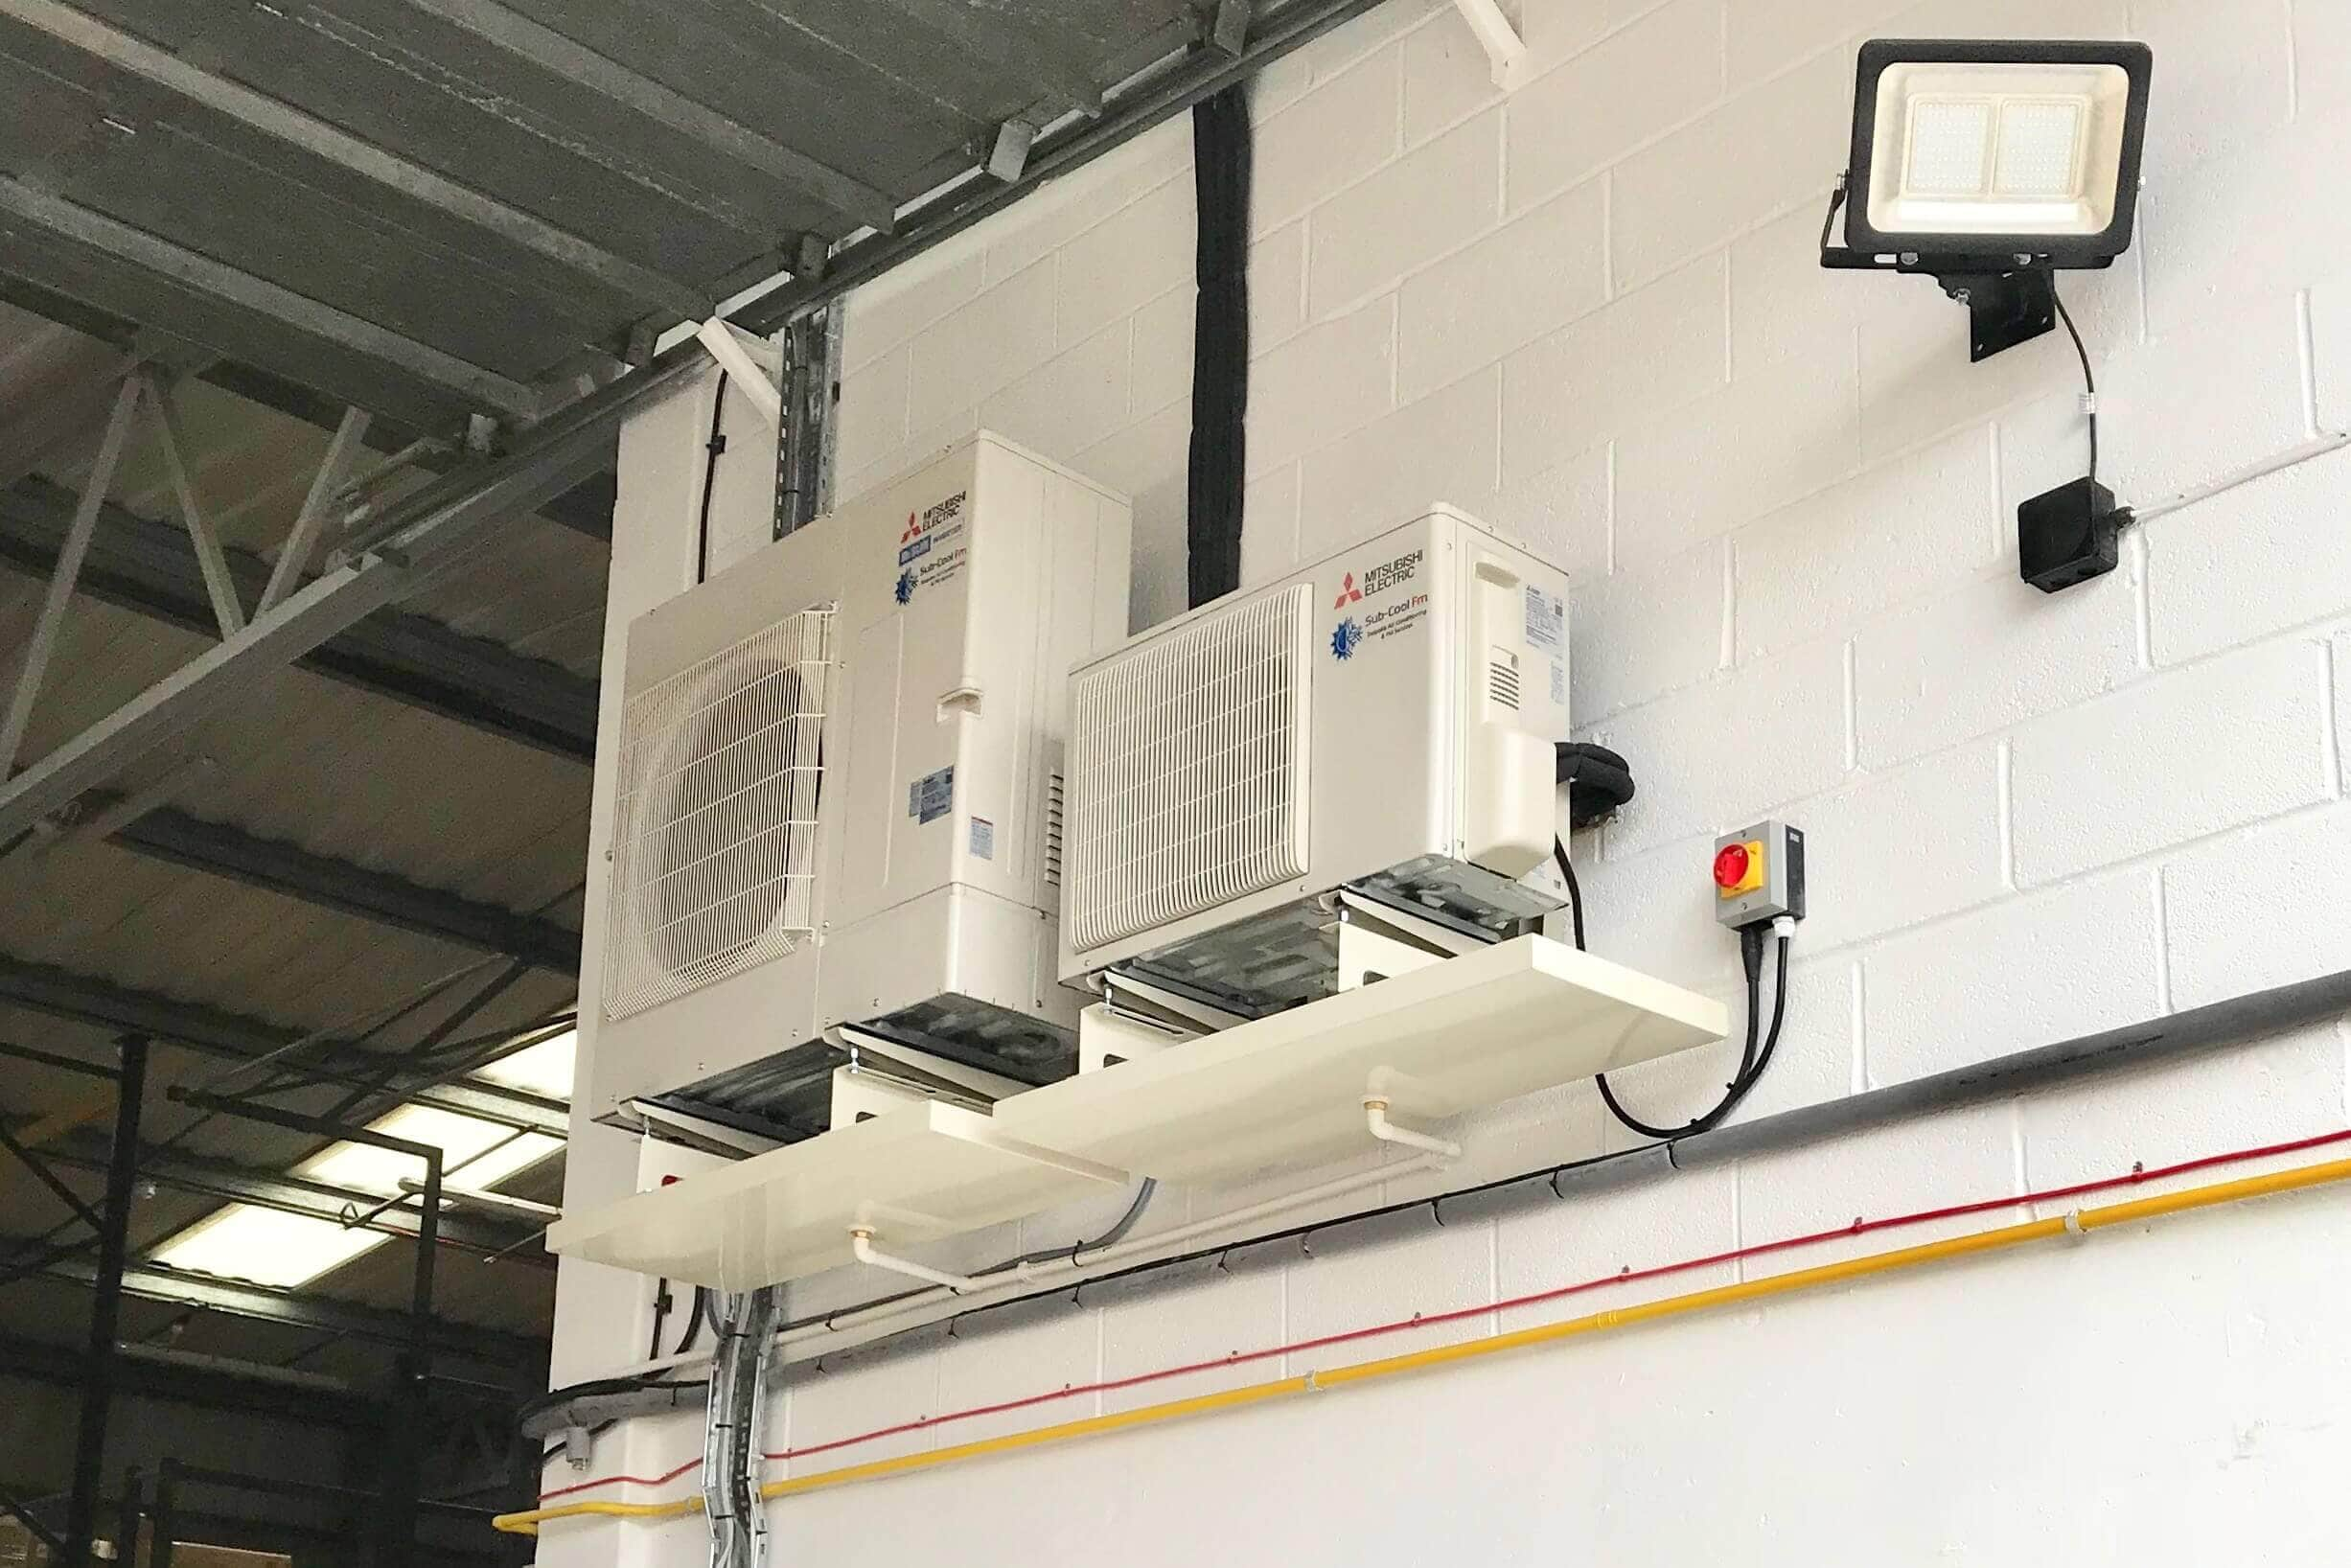 Large commercial air conditioning units installed in a warehouse